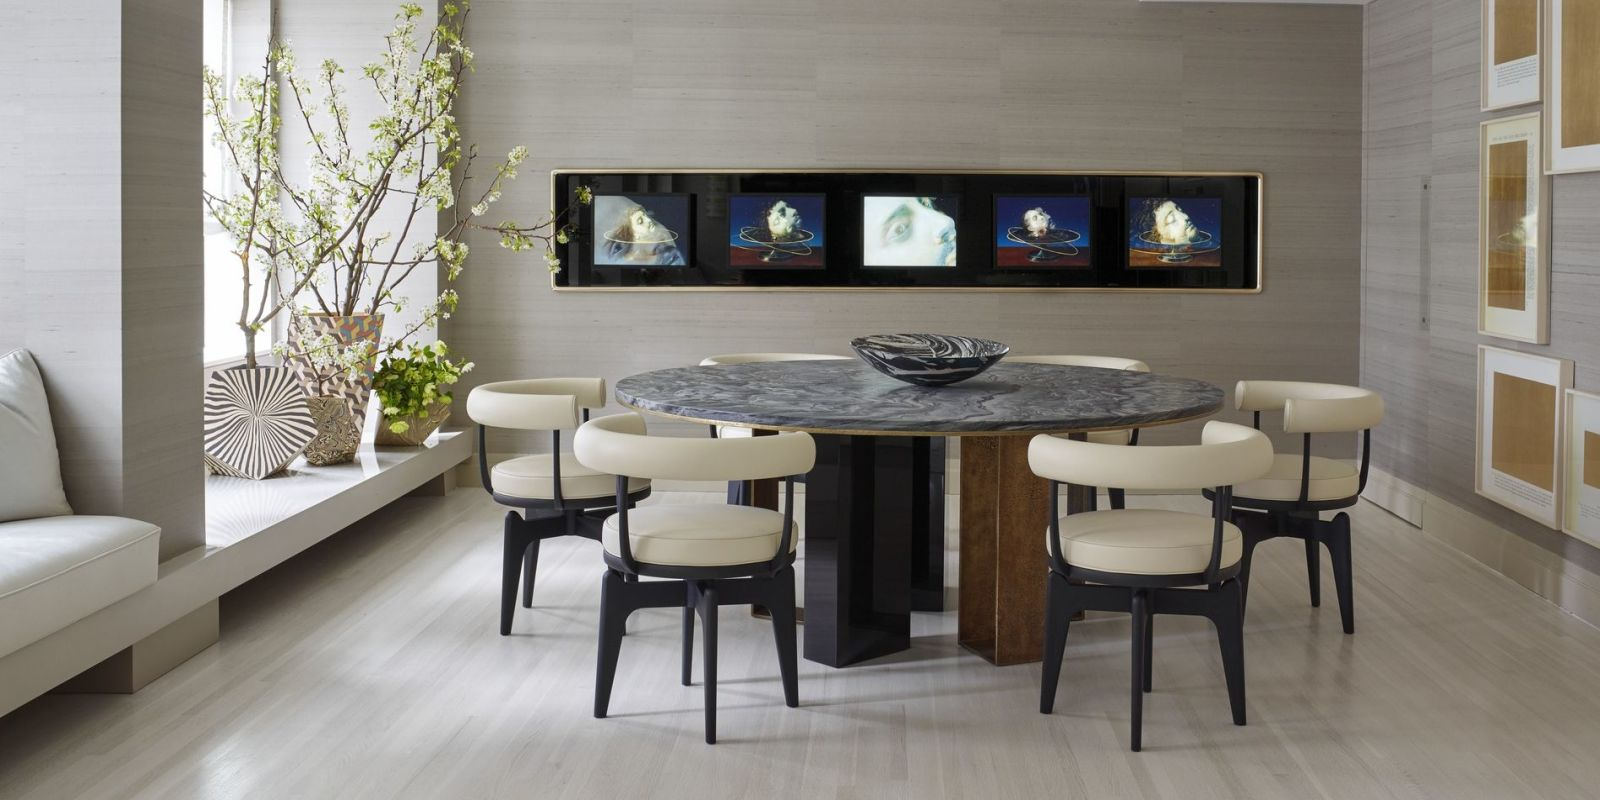 25 modern dining room decorating ideas contemporary for Modern dining suites